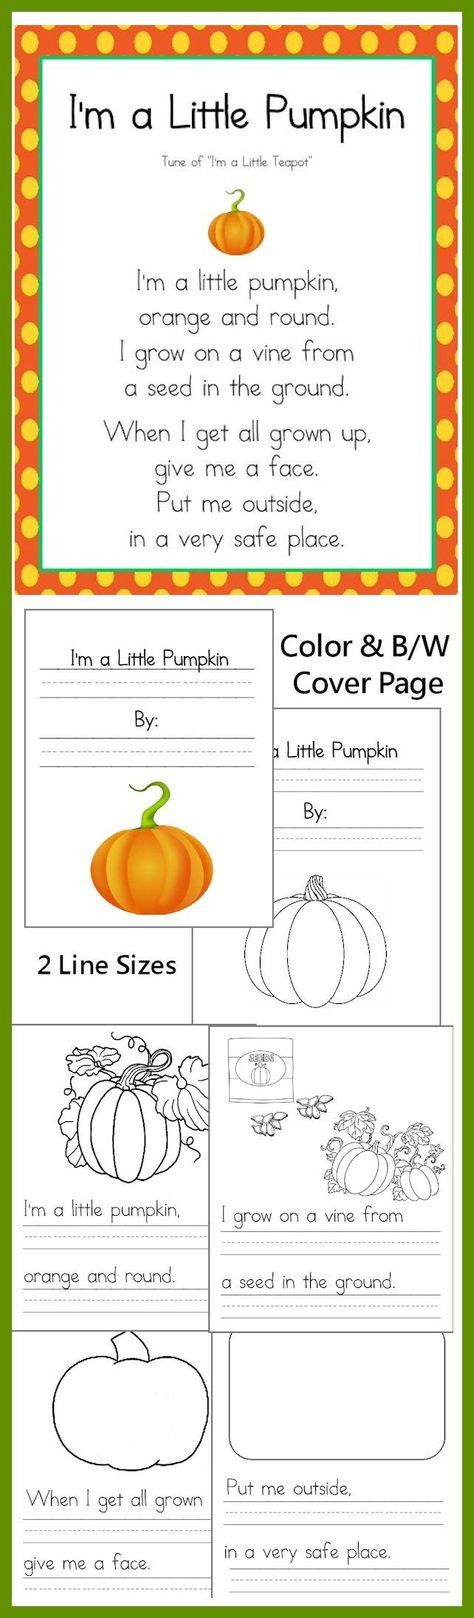 I'm a Little Pumpkin poem & copy work! Created for PreK-1st grade and provides 2 line sizes to accommodate writing / printing abilities! Download Club members can download @ http://www.christianhomeschoolhub.spruz.com/pt/Fall-Related-Resources/wiki.htm